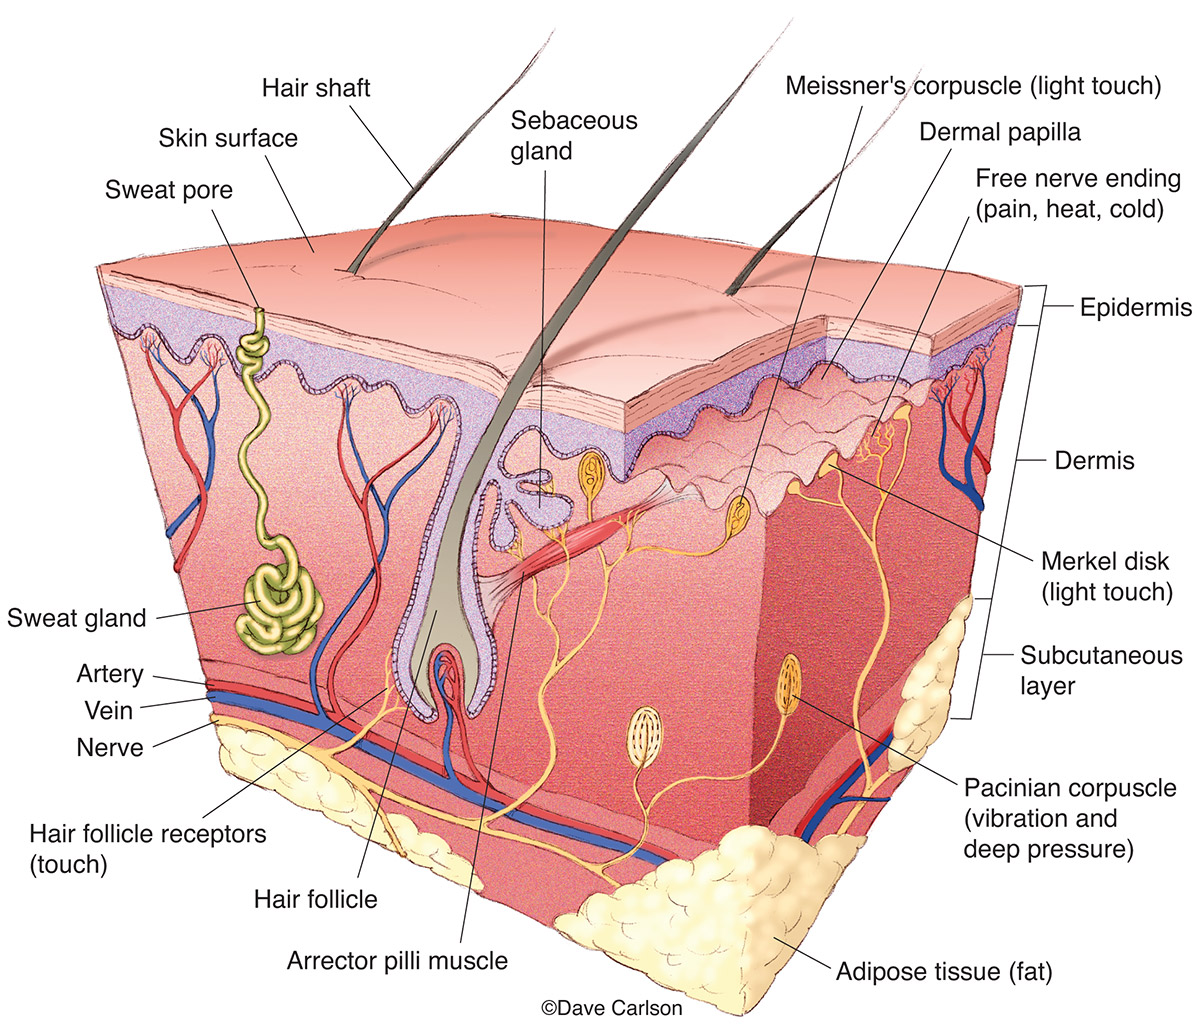 illustration, structure of skin, nerve receptors, touch, pressure, heat, cold, photo